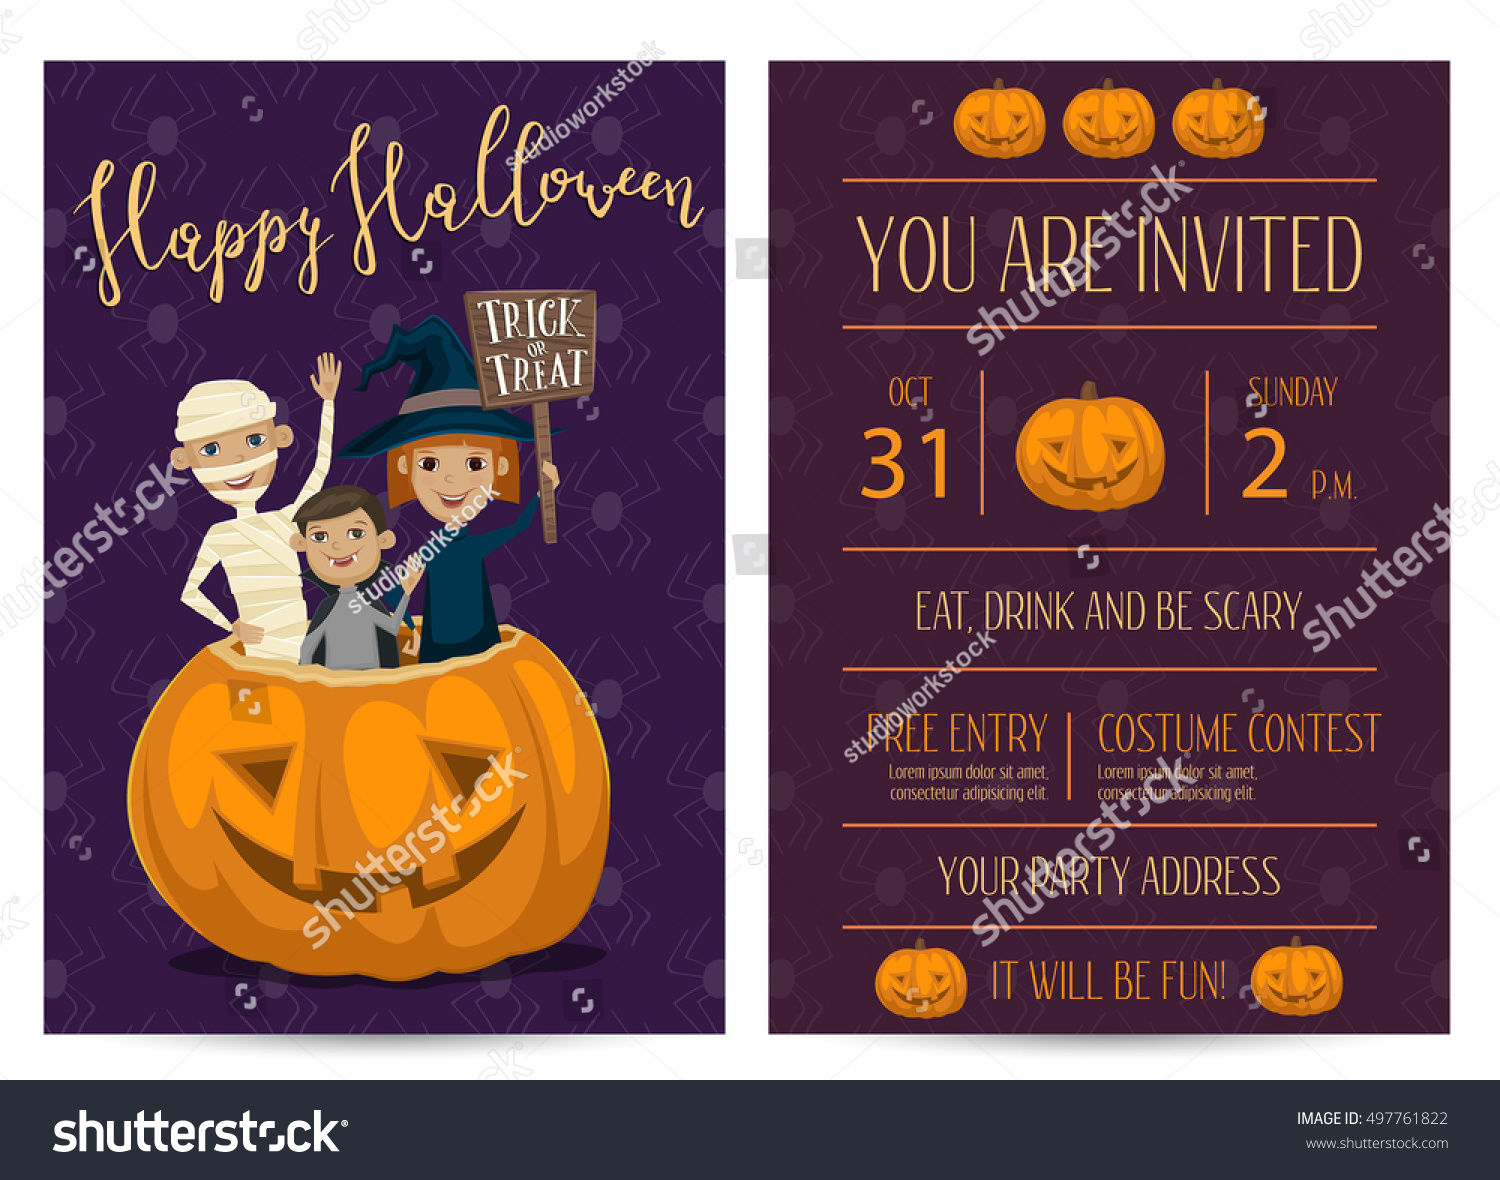 Halloween Party Invitation Halloween Elements Place Stock Vector ...